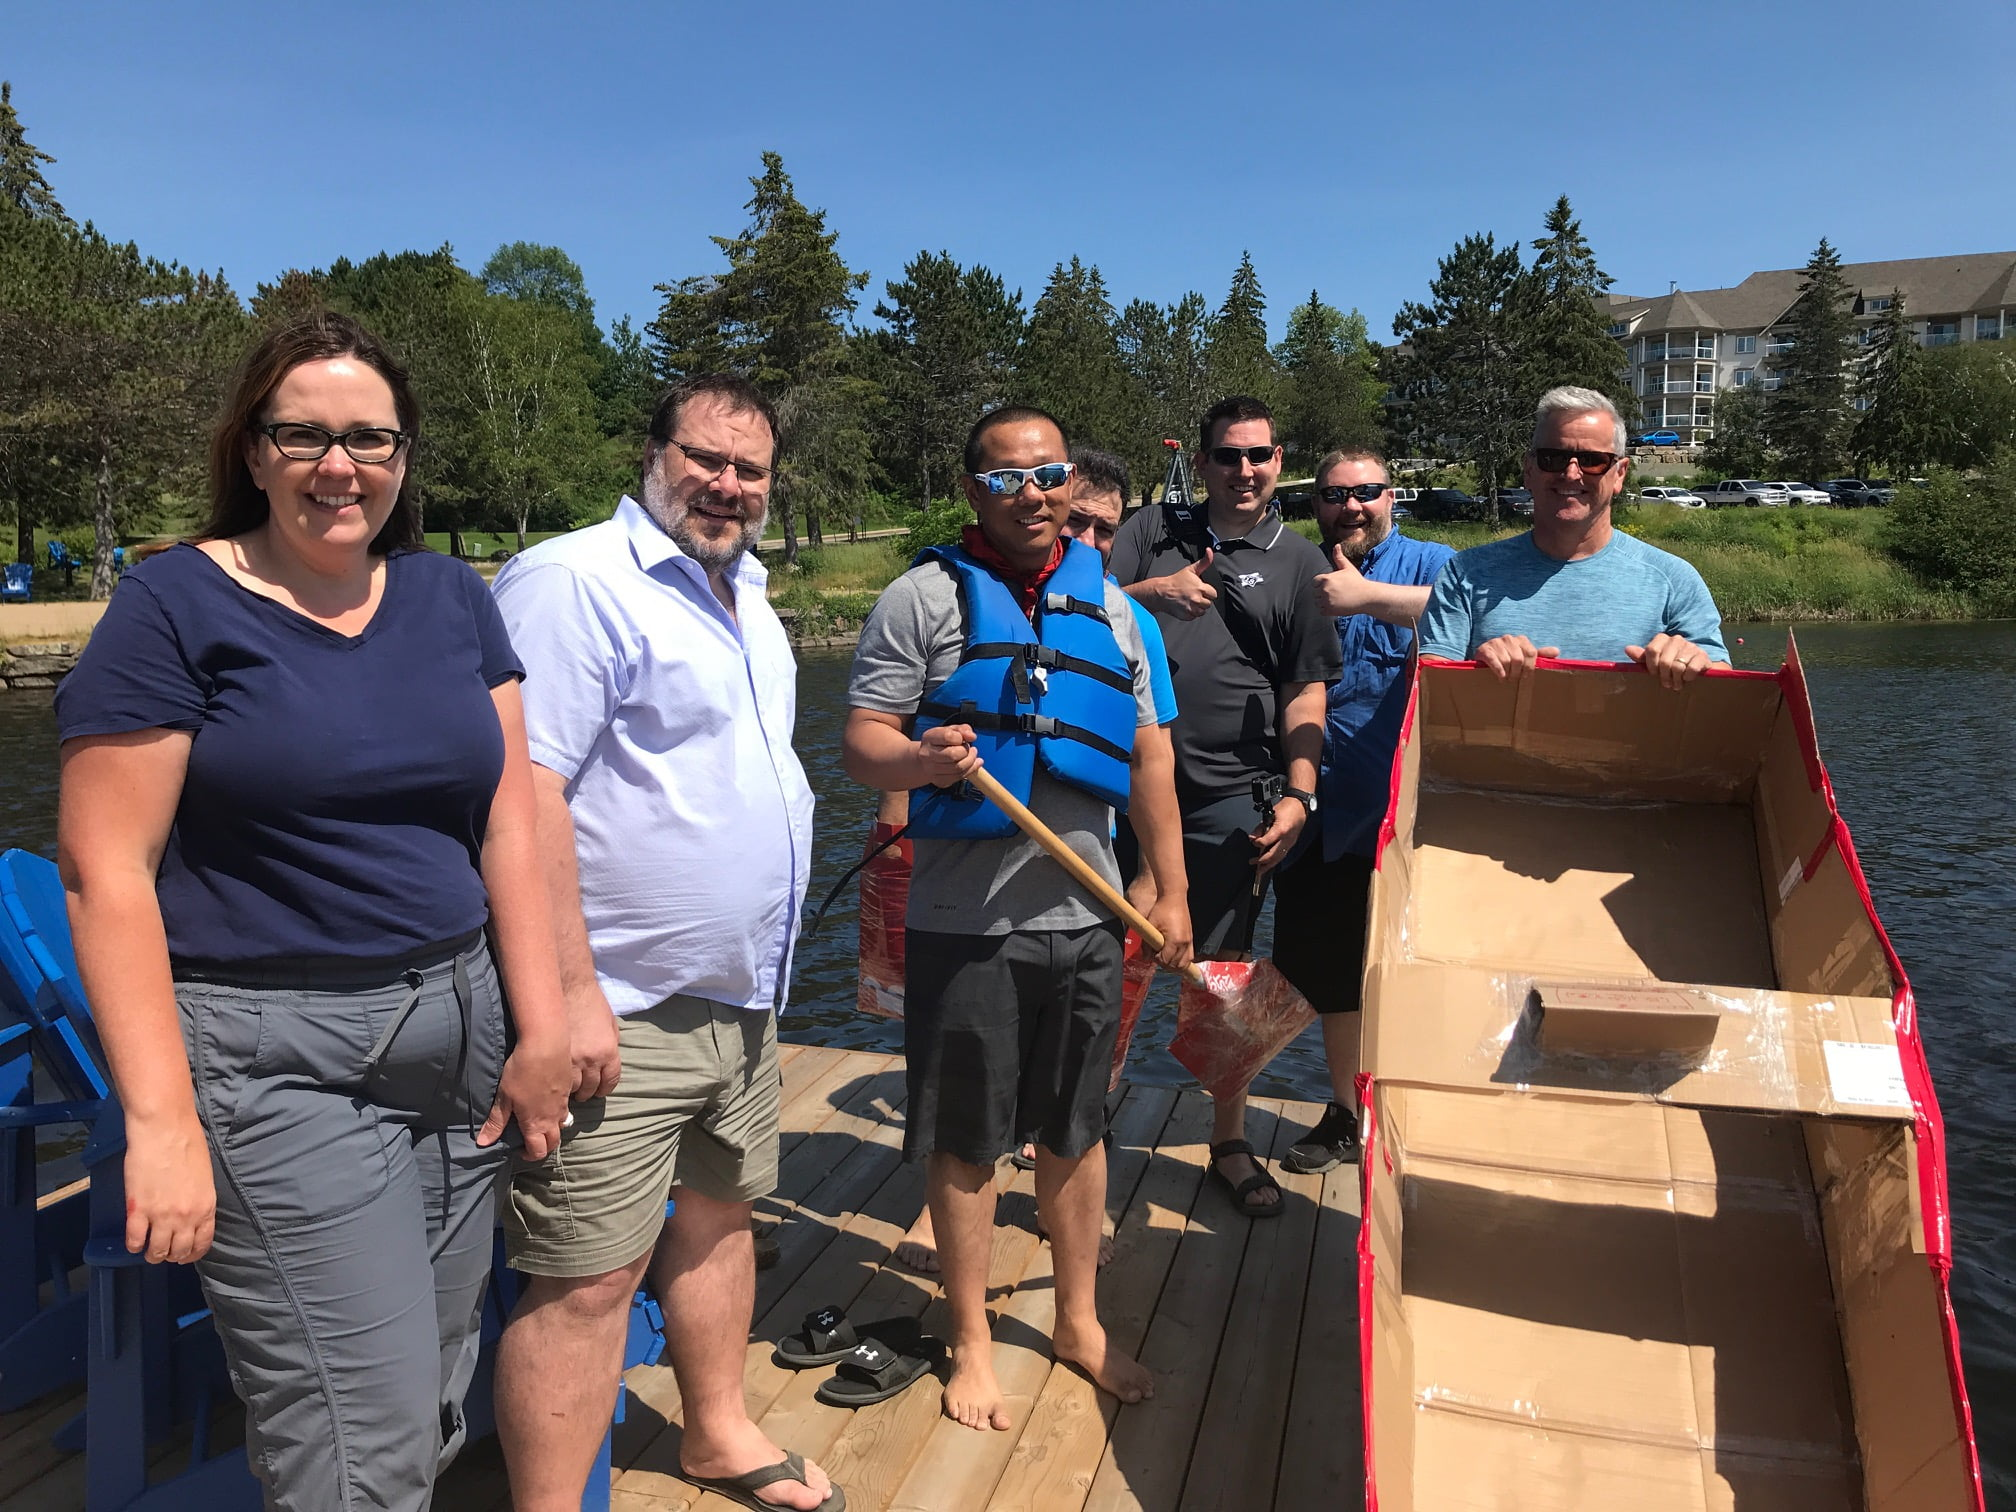 HealthHub Staff - Team Building Boat Challenge - Red Team